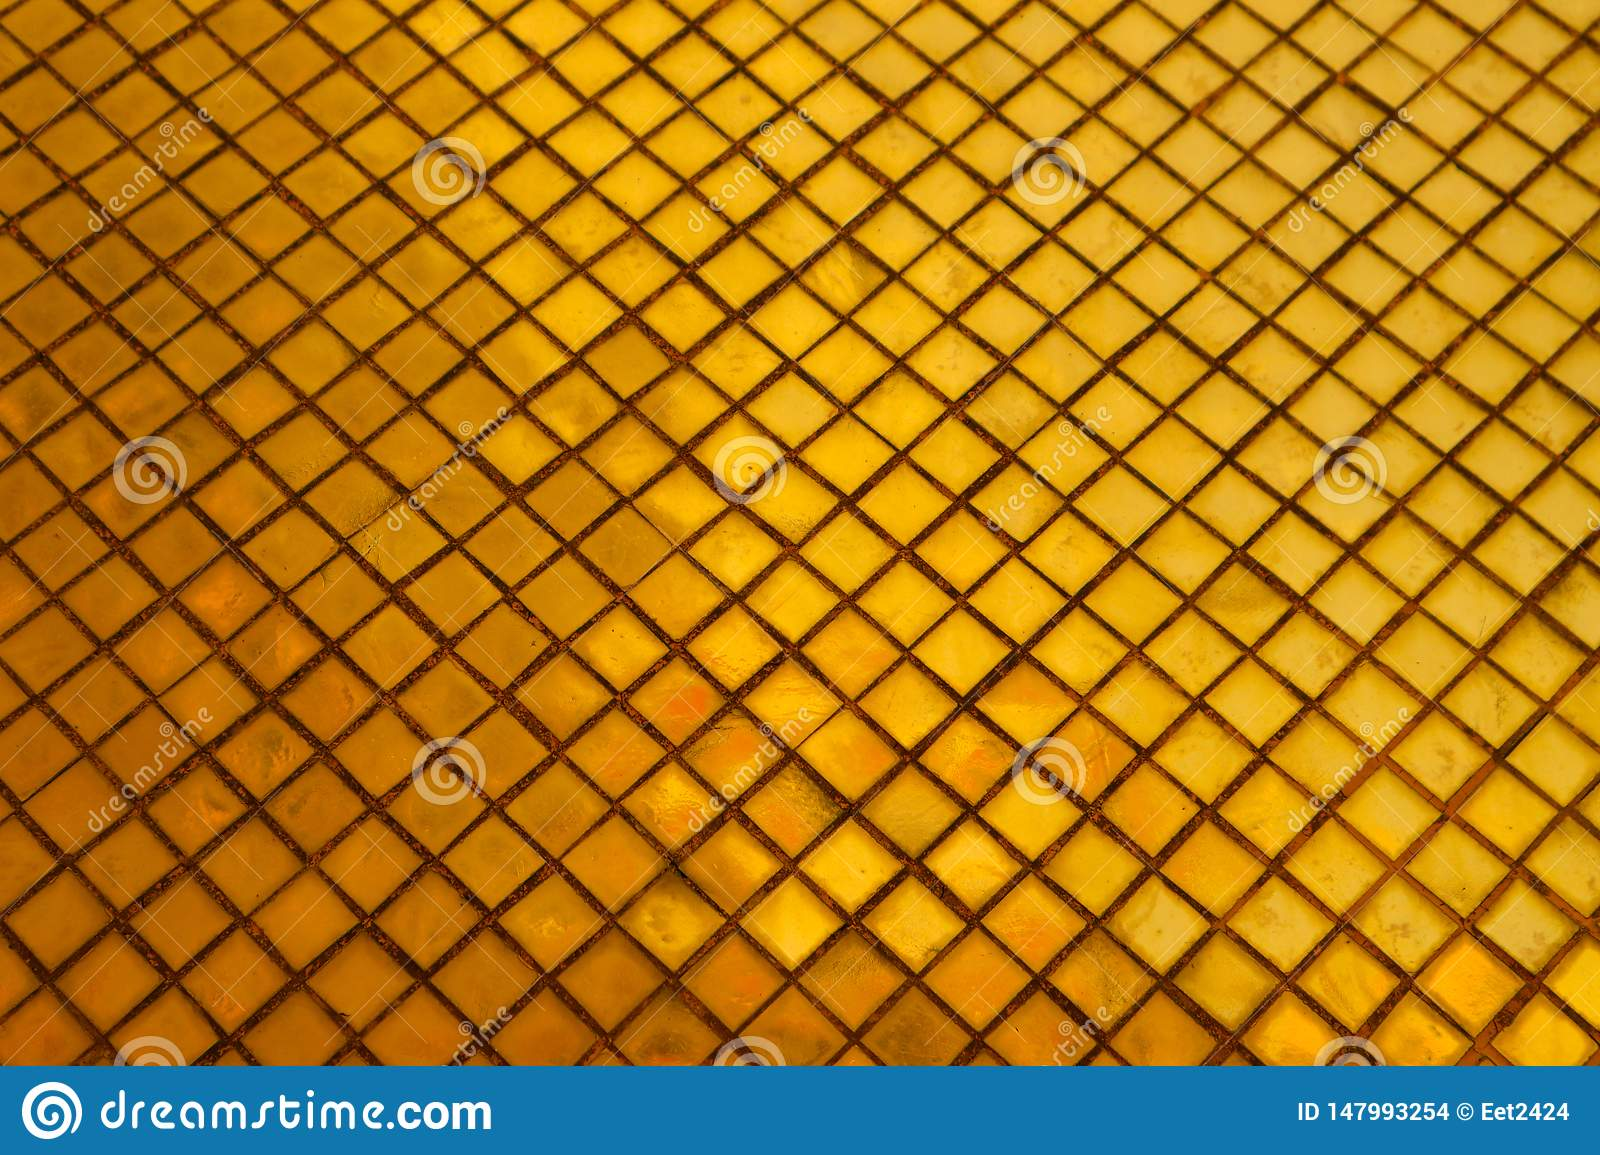 Beautiful closeup textures abstract tiles and gold color glass wall background and art wallpaper